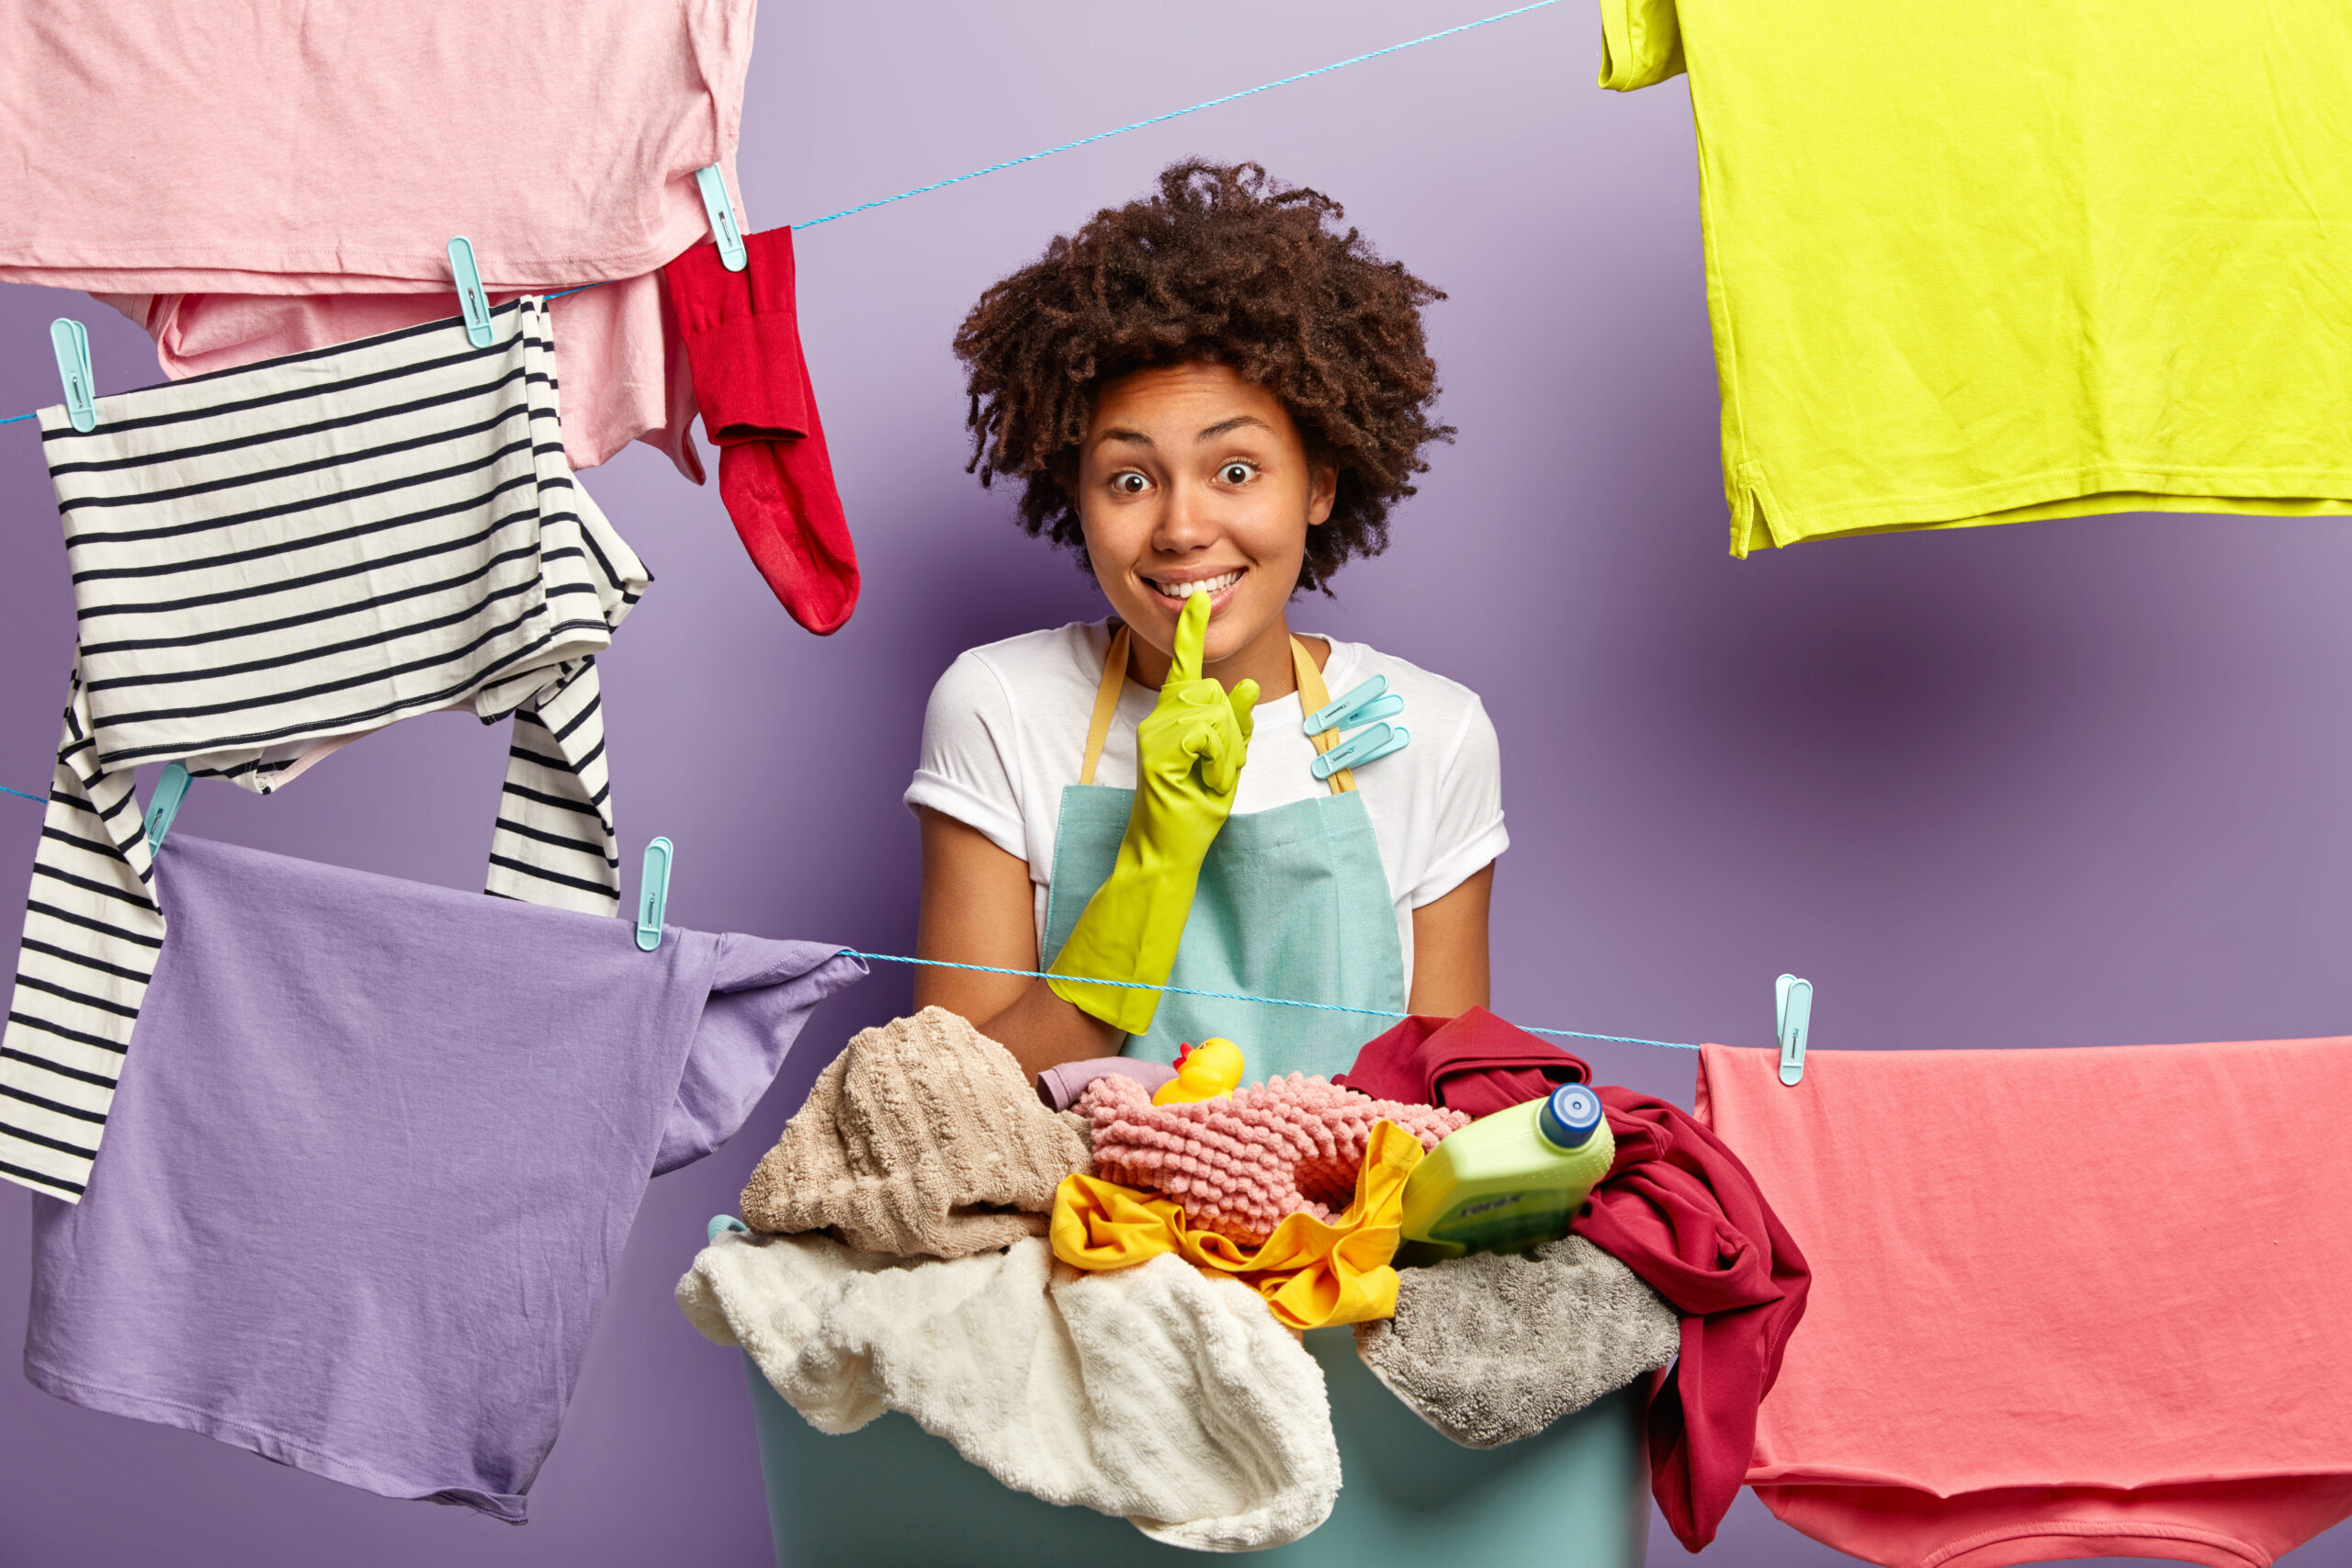 Laundry   Laundry Cleaning Products   Laundry Cleaning Supplies